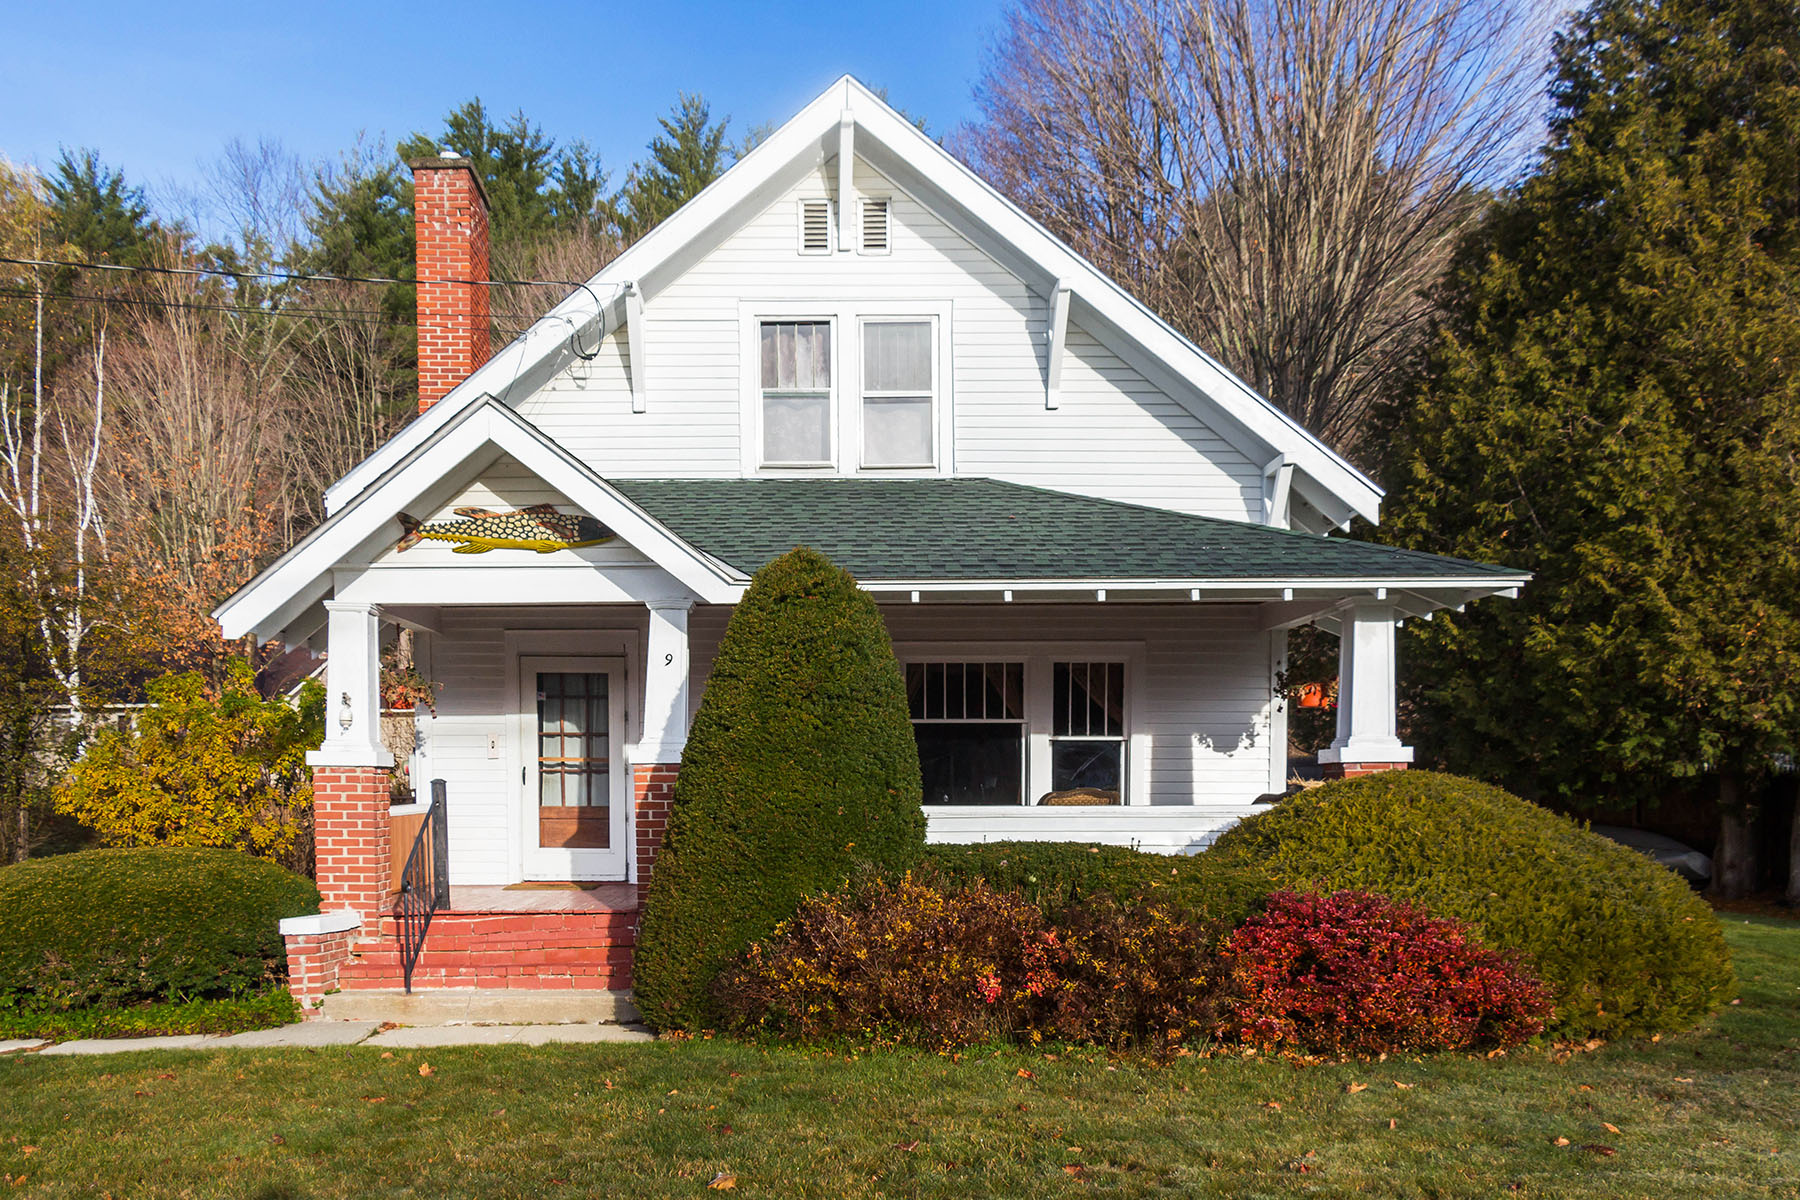 Single Family Home for Sale at Charming Adirondack Bungalow 9 Market St Horicon, New York 12815 United States